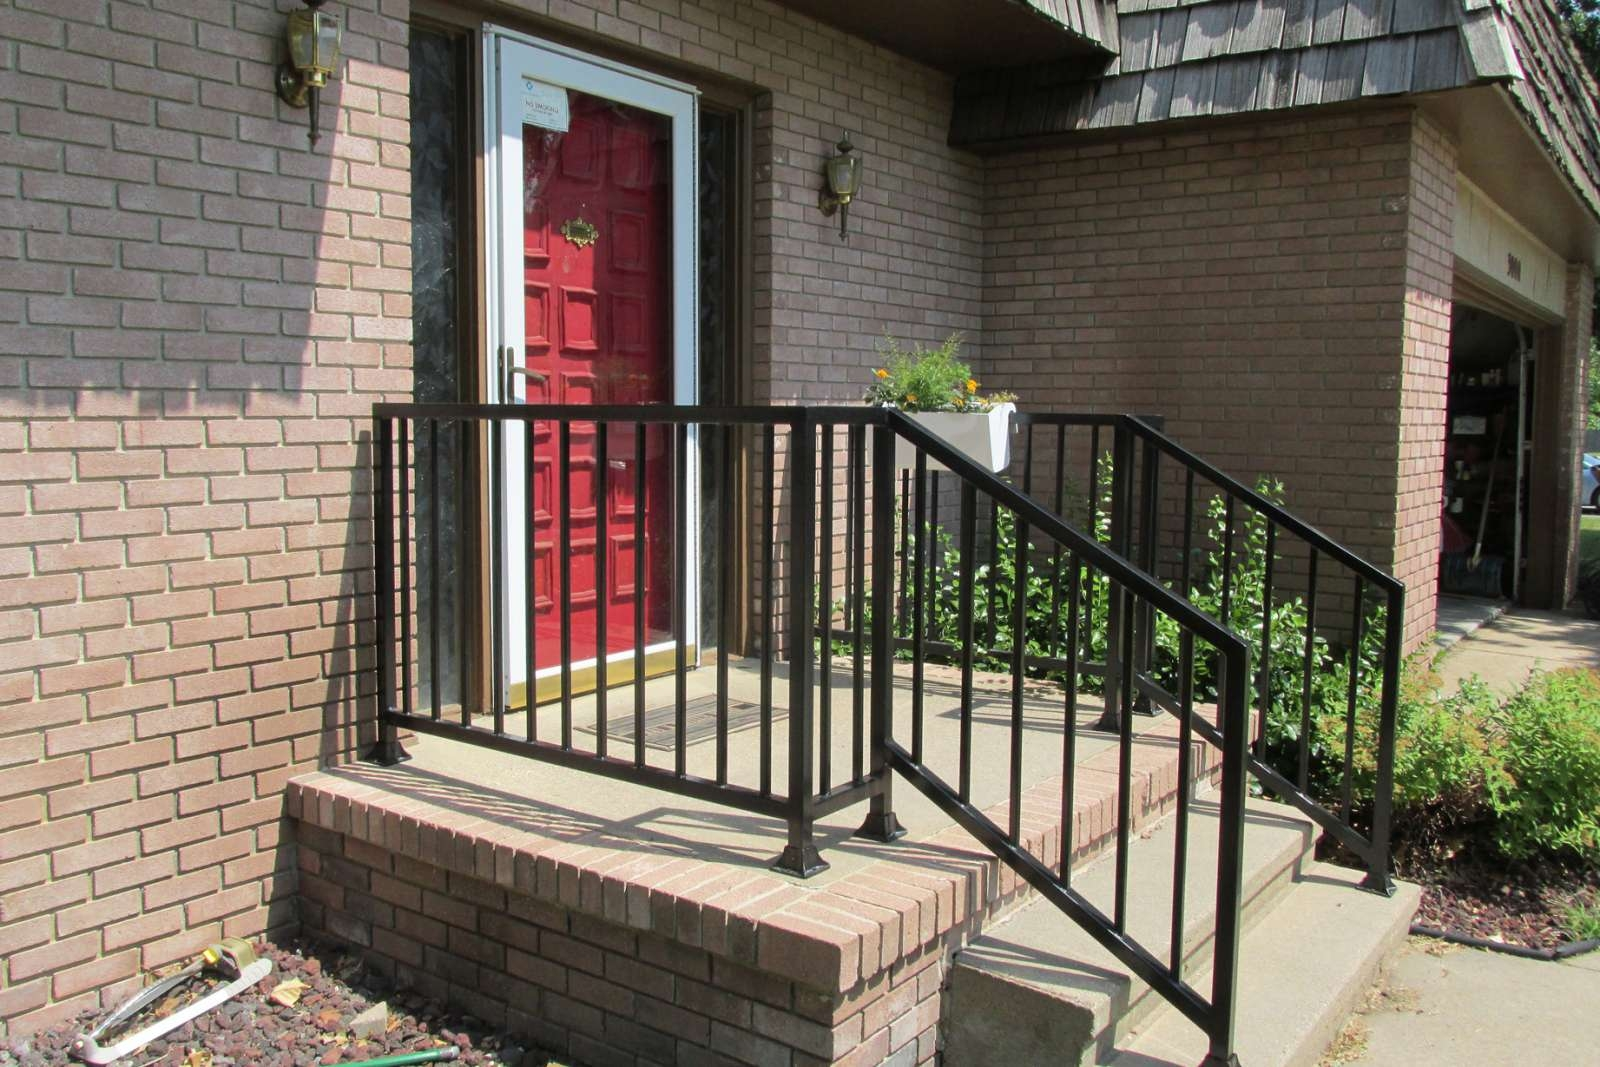 Railings Products Pleasantview Home Improvement | Wrought Iron Handrail For Steps | Aluminum | Simple | Front Door Step | Forged Iron | Custom